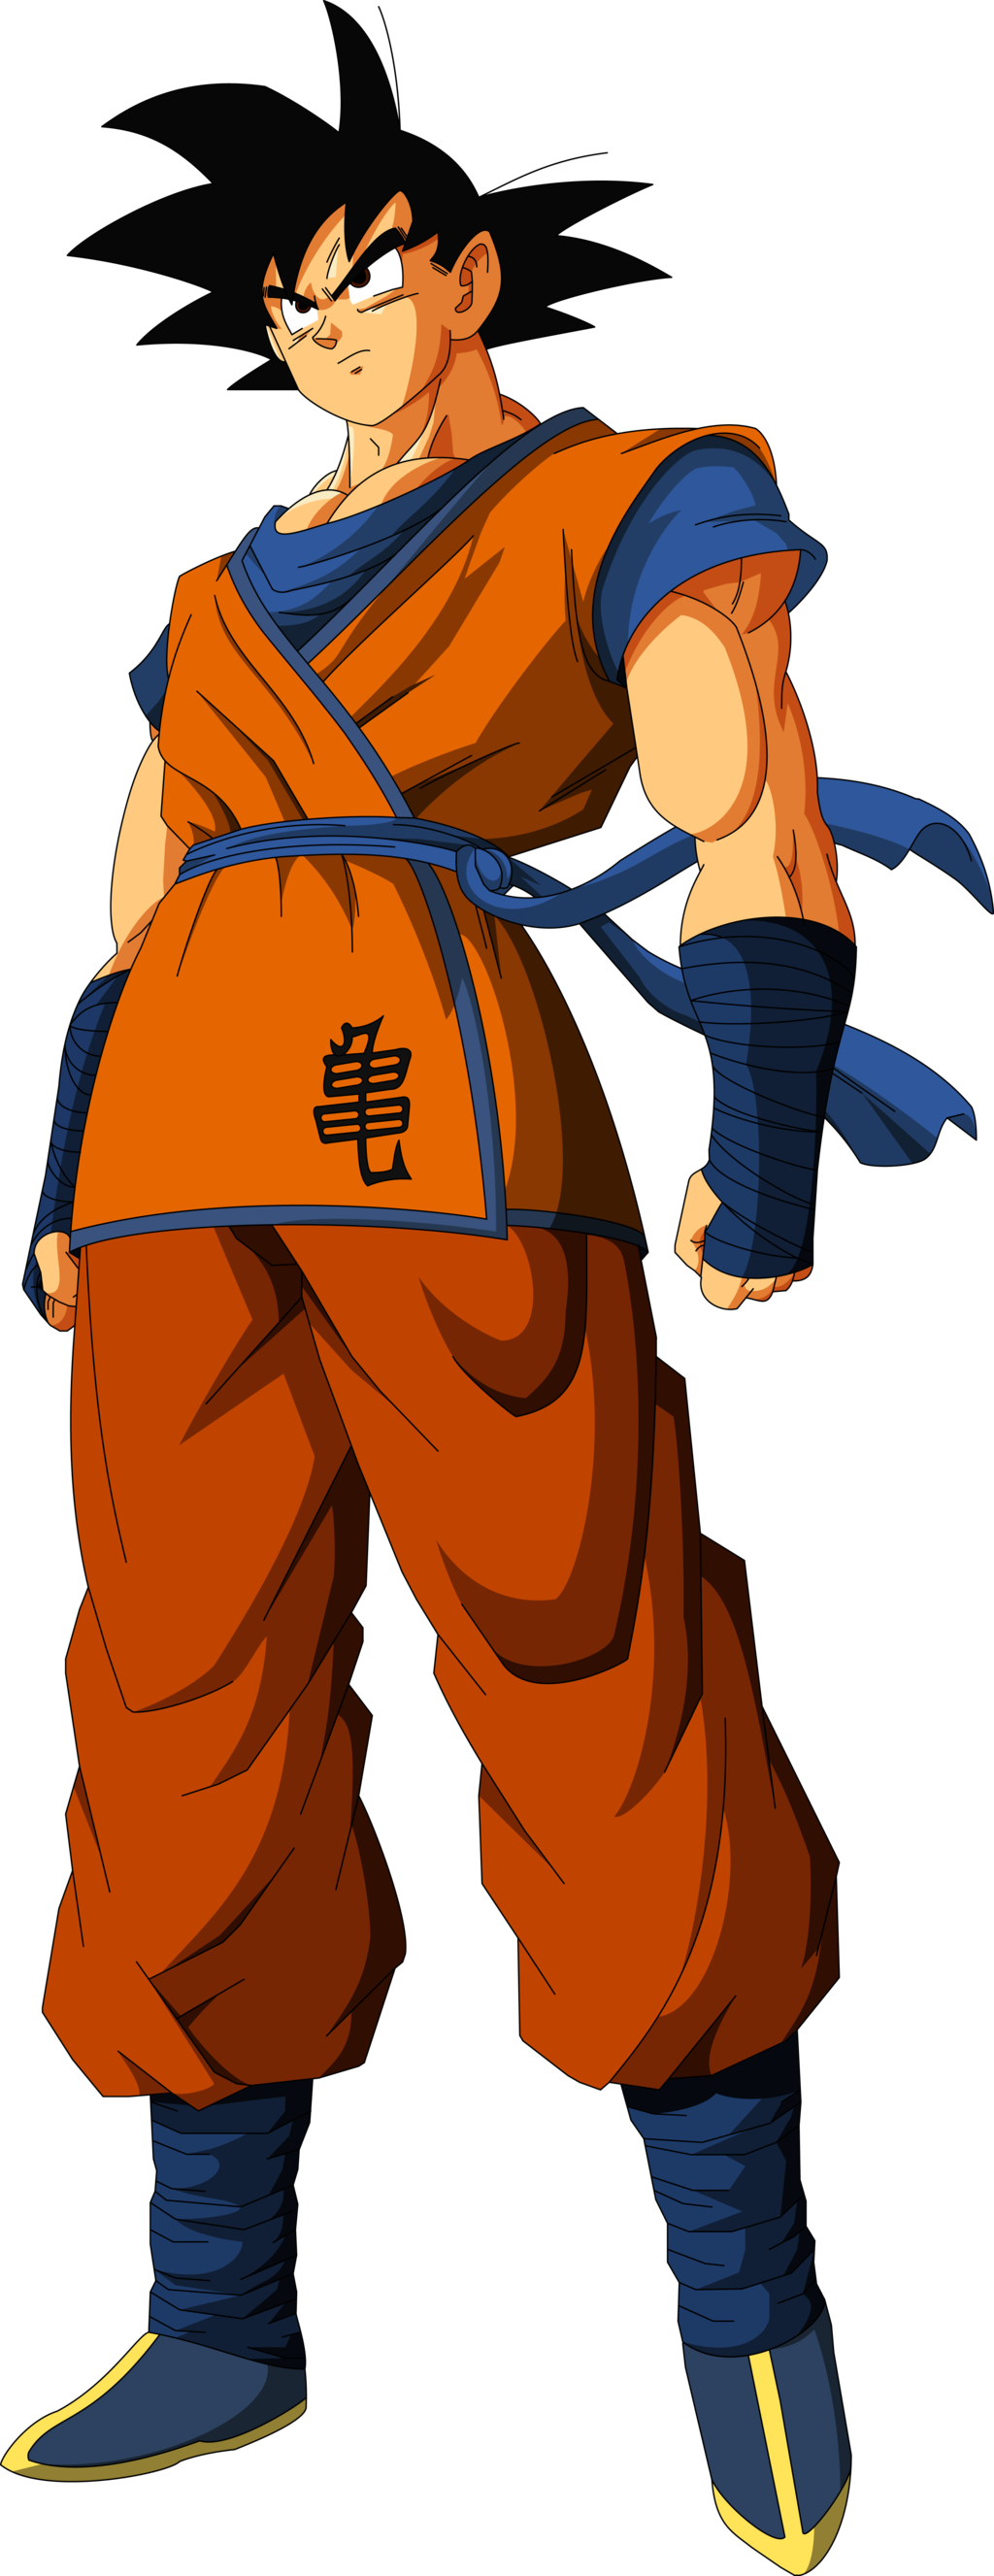 Goku clothes png. Rocking his new outfit